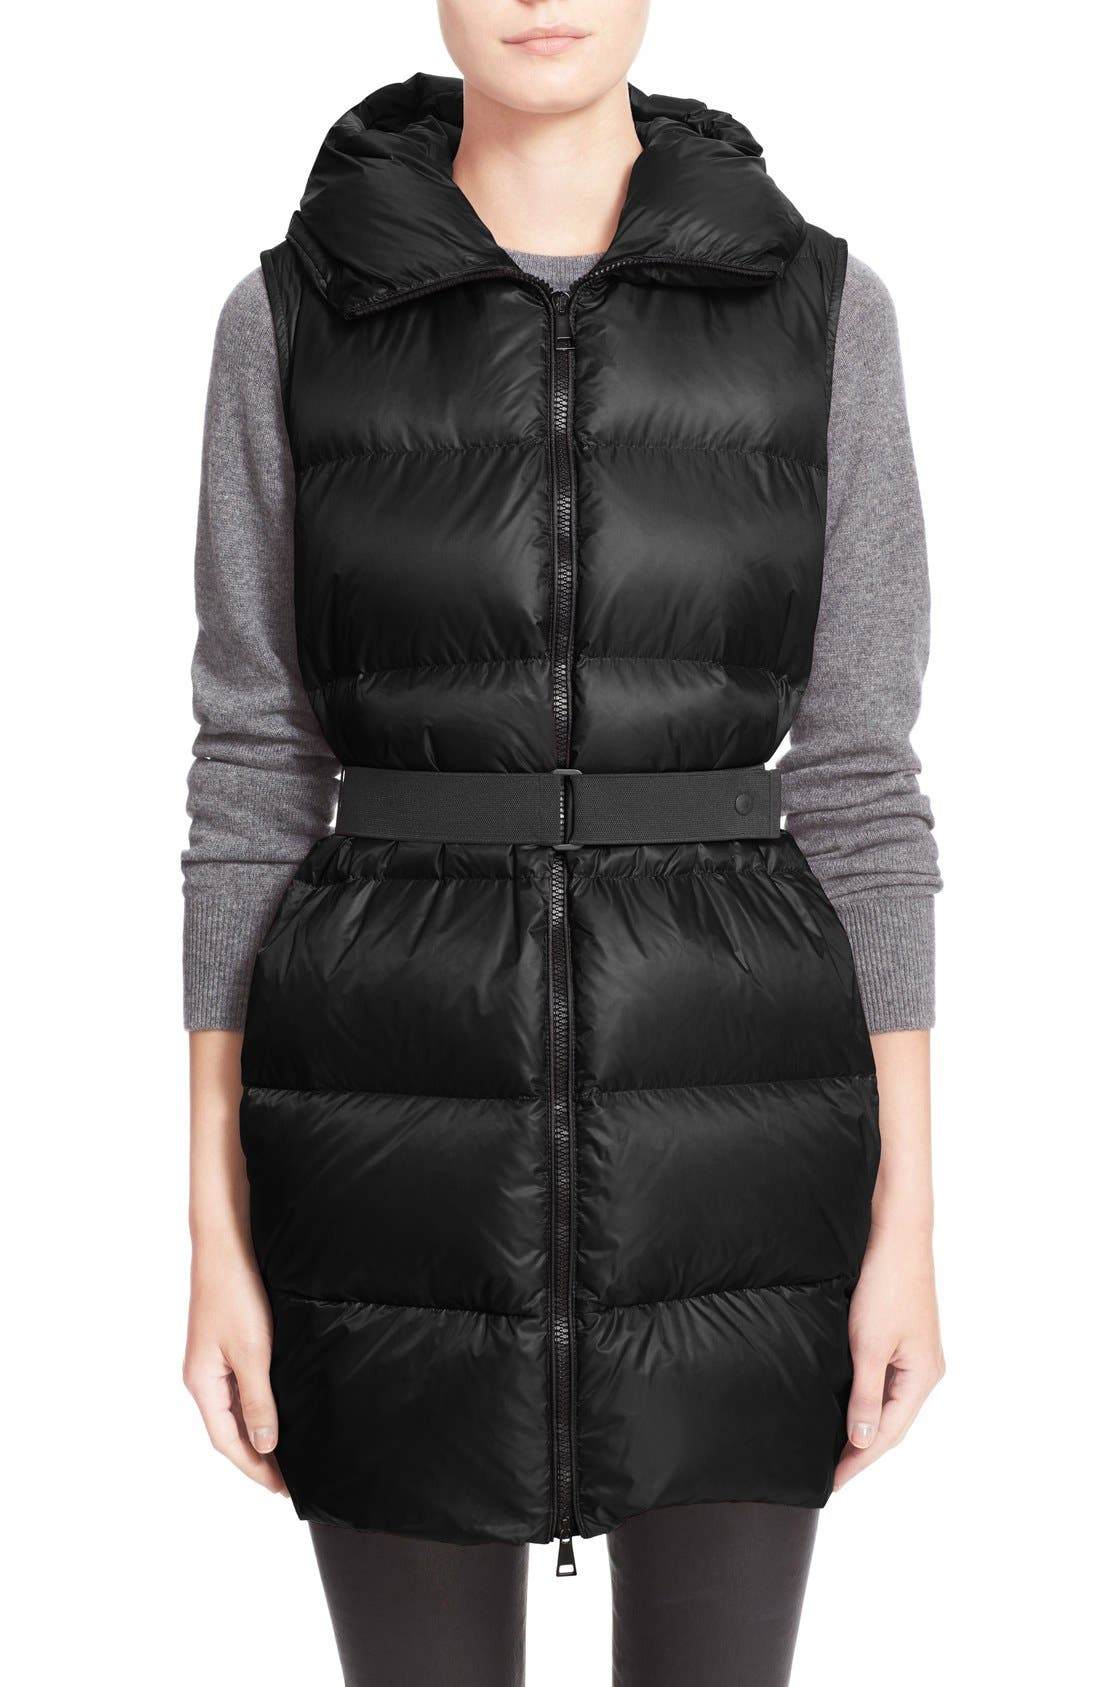 Alternate Image 1 Selected - Moncler 'Glykeria' Water Resistant Hooded Down Puffer Vest